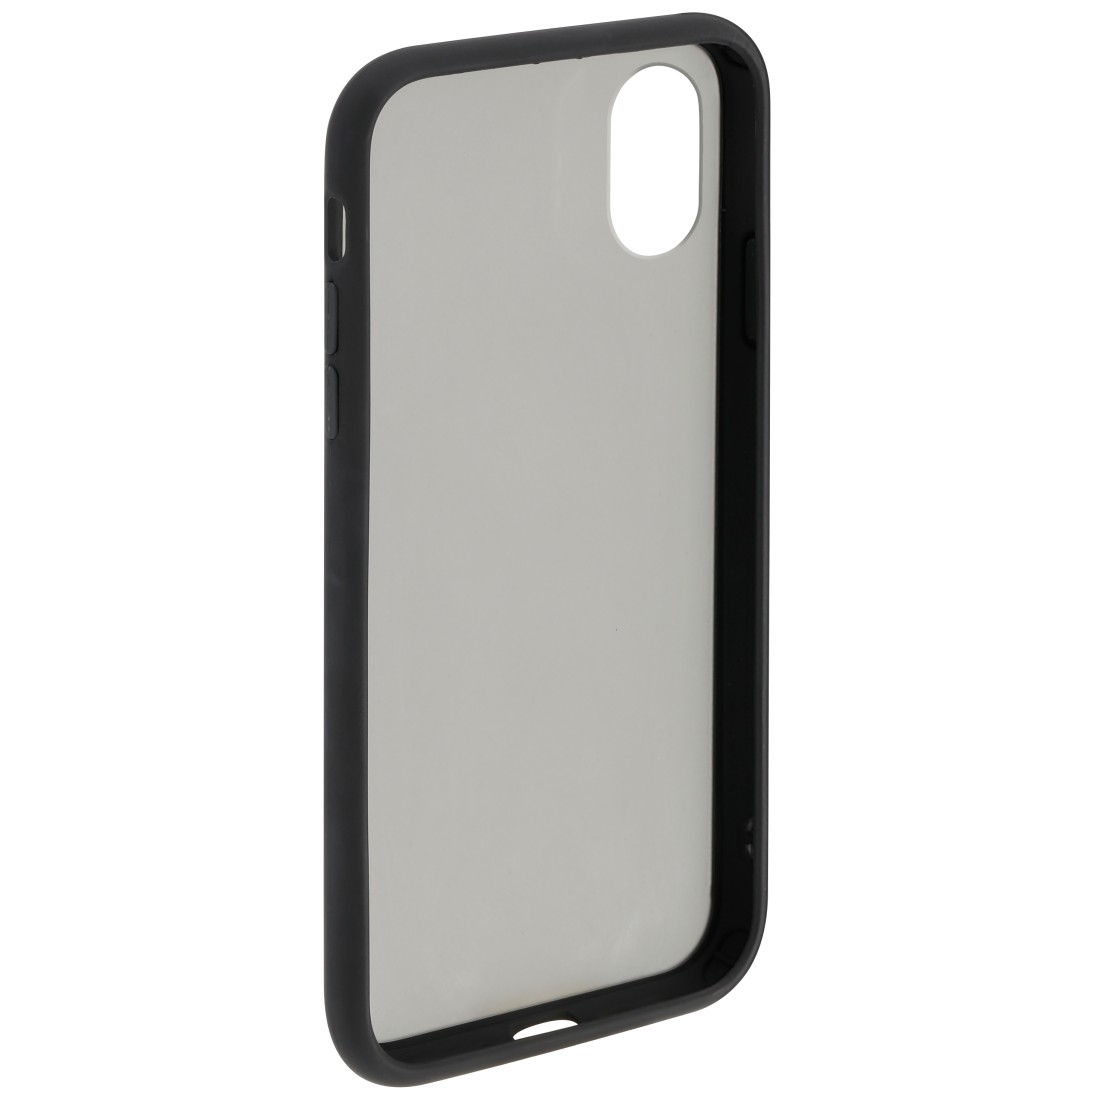 "abx2 High-Res Image 2 - Hama, Coque de protection ""Invisible"" pour Apple iPhone X/Xs, noire"